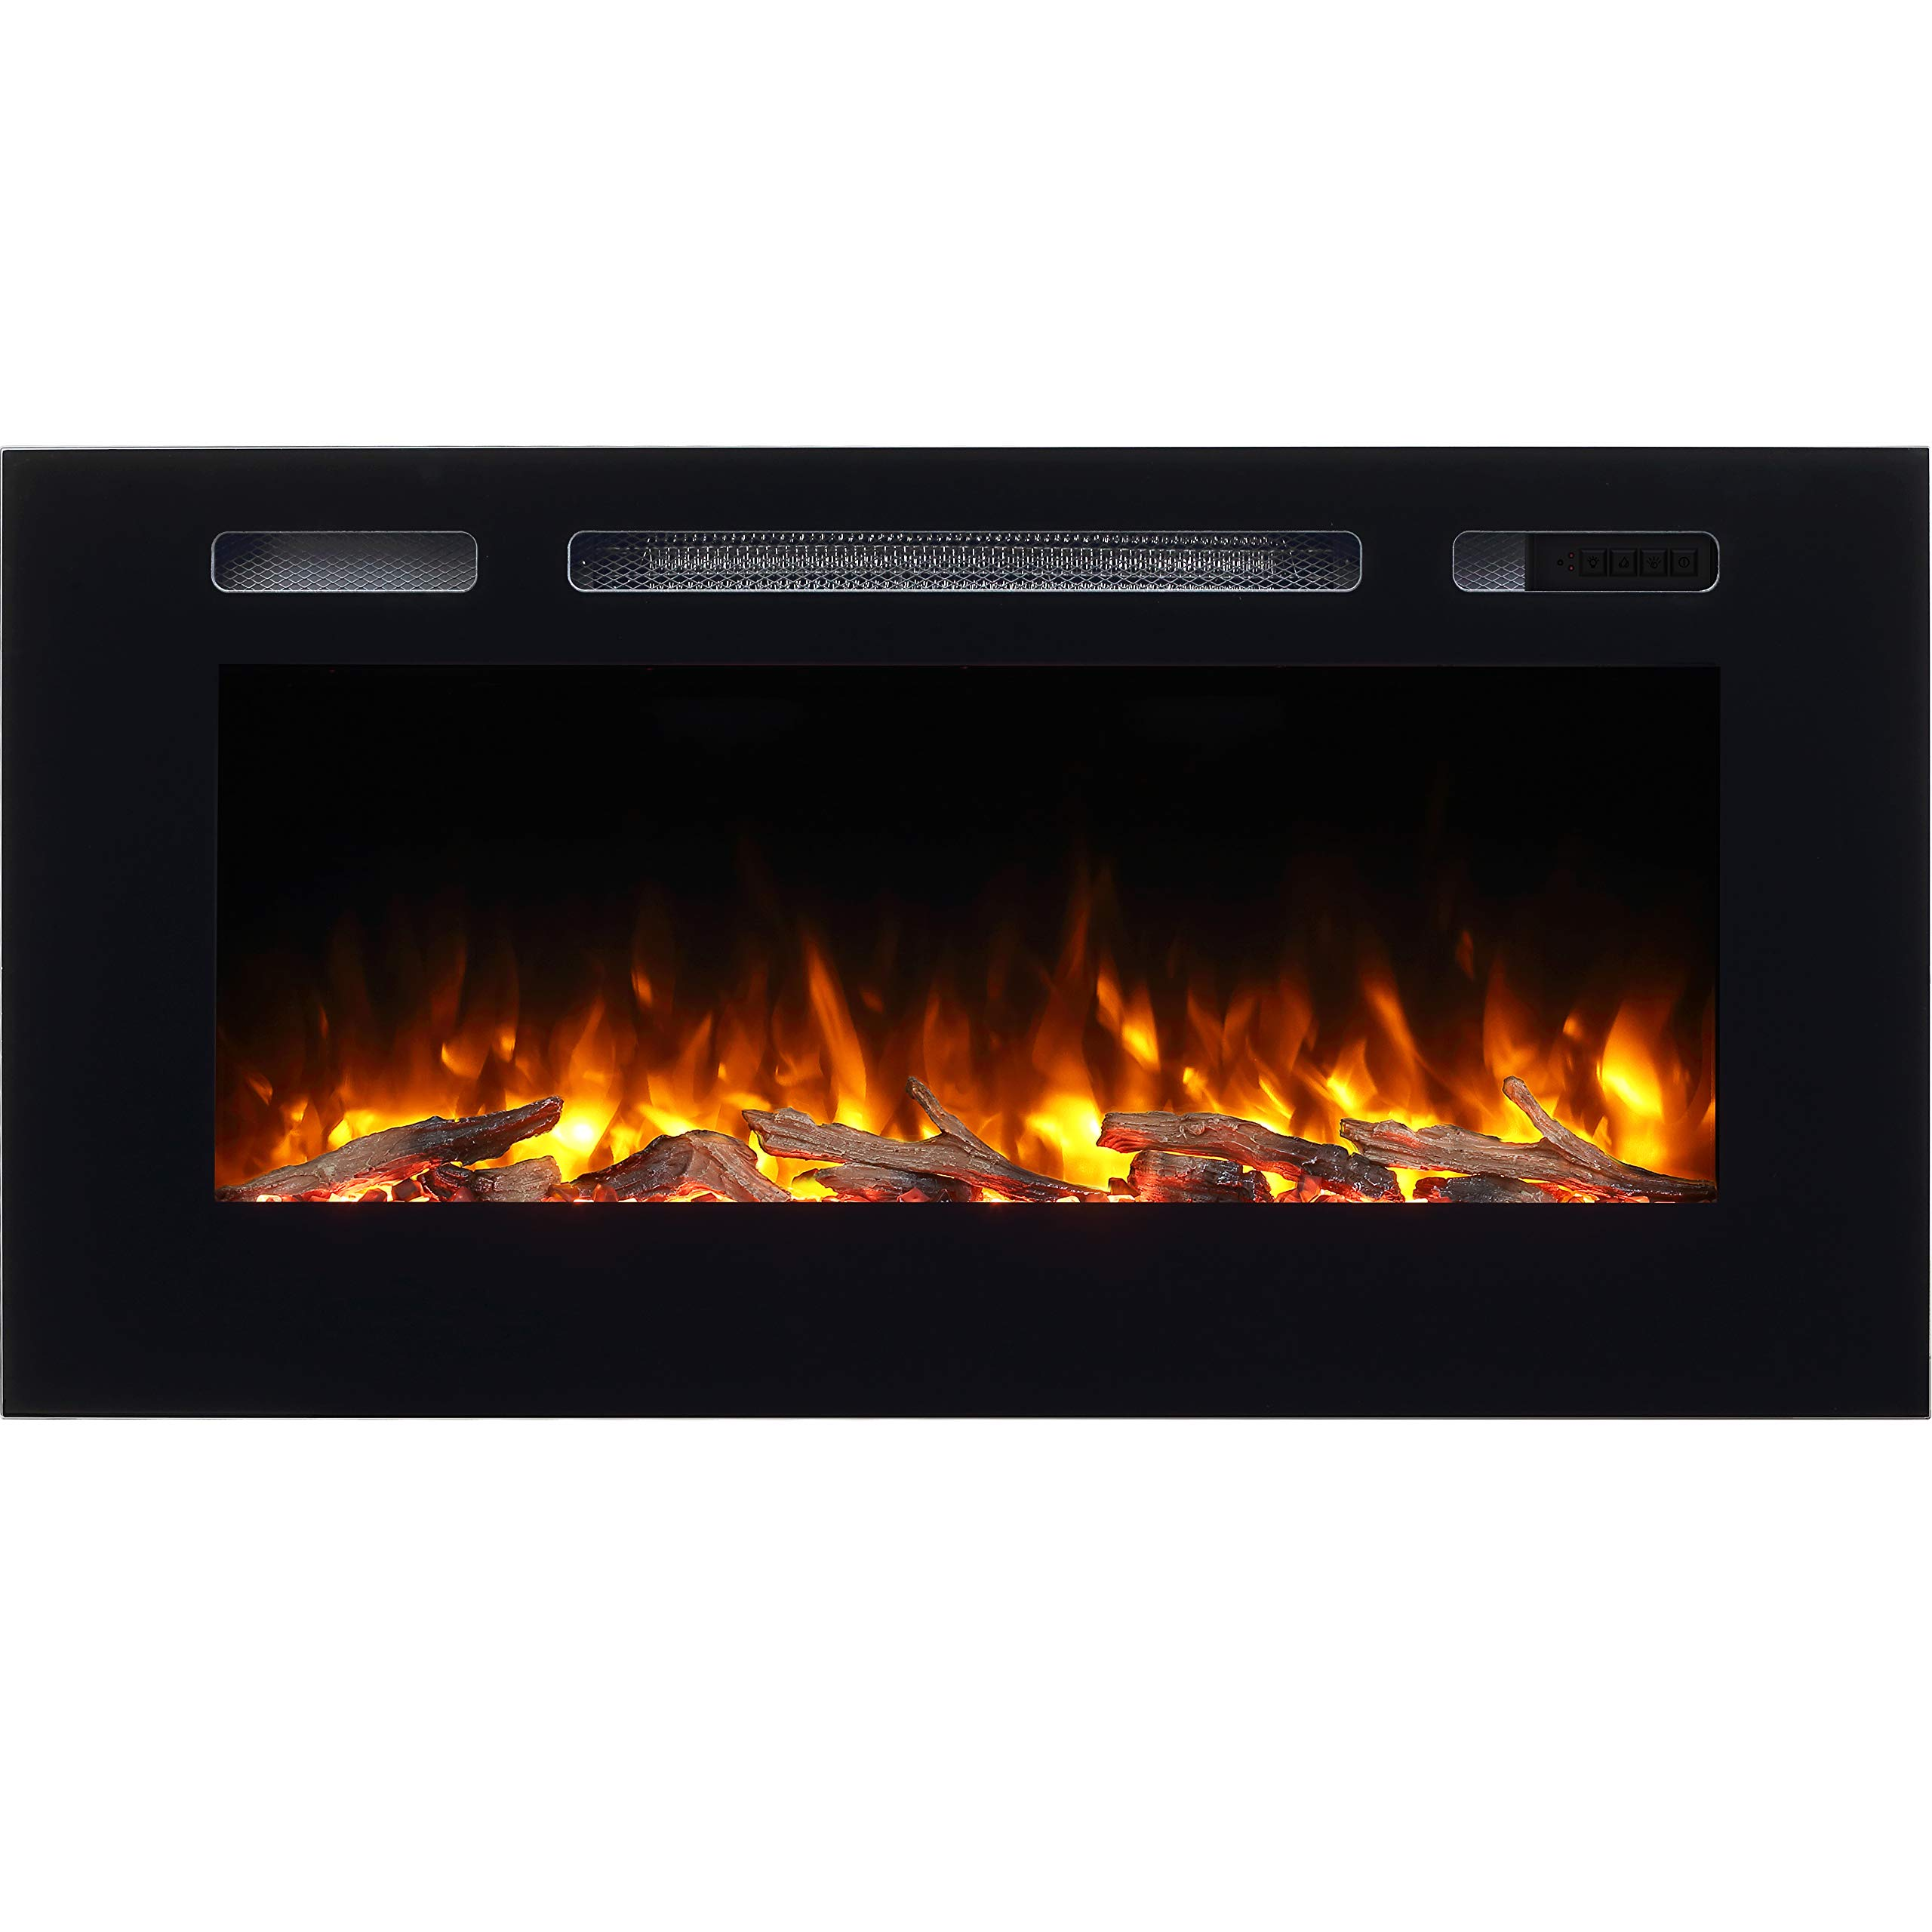 "Hawnby Recessed Electric Fire E140R 220/240Vac, 1&2kW, Log Set & Crystal, 7 Day Programmable Remote Control (40"")"